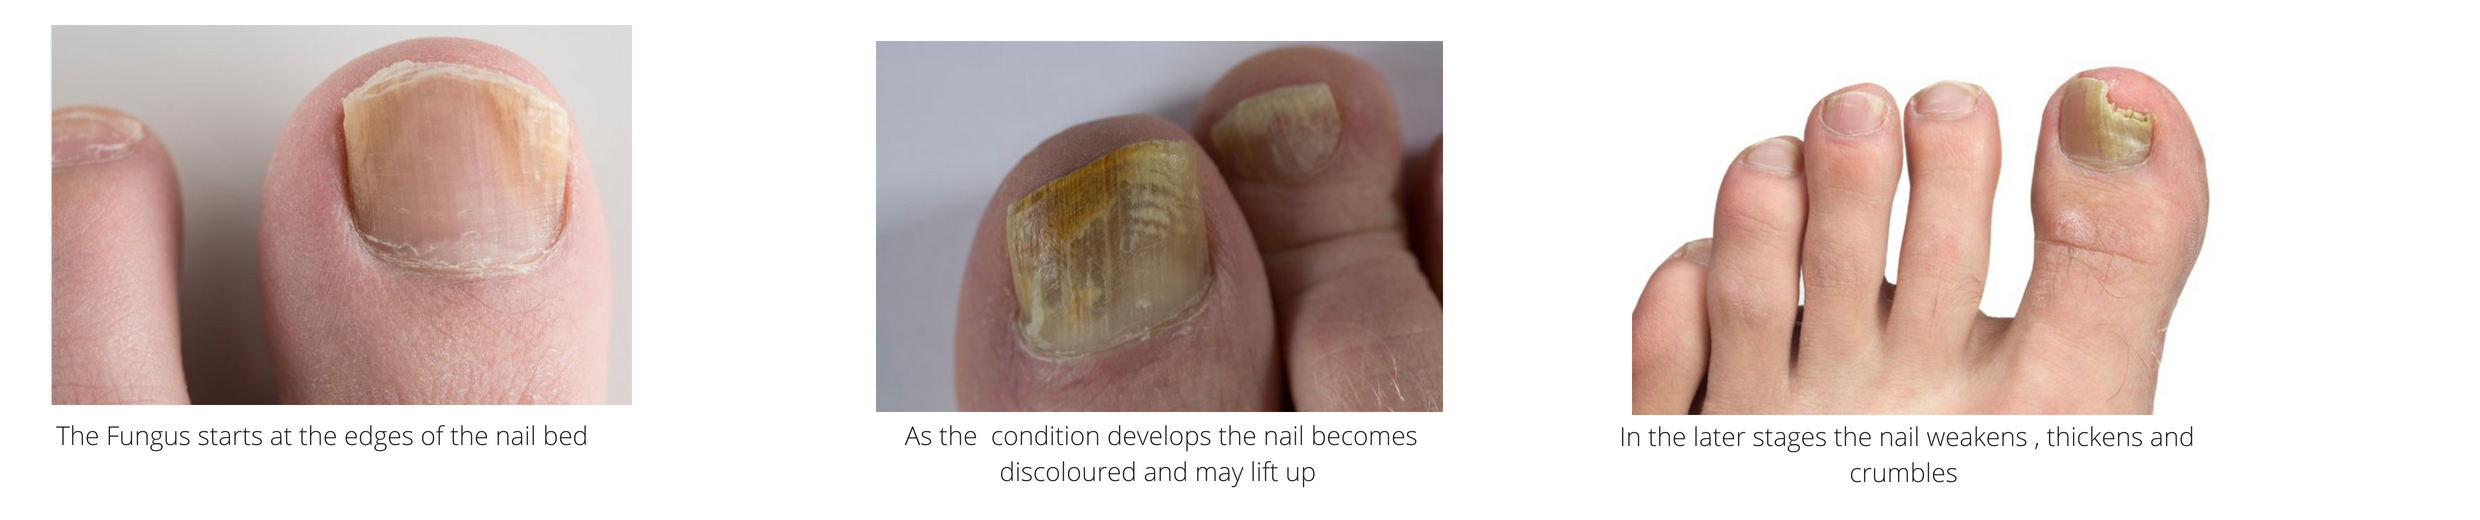 Toe nail fungus symptoms treatment, manchester, bolton, wigan, chorley, preston